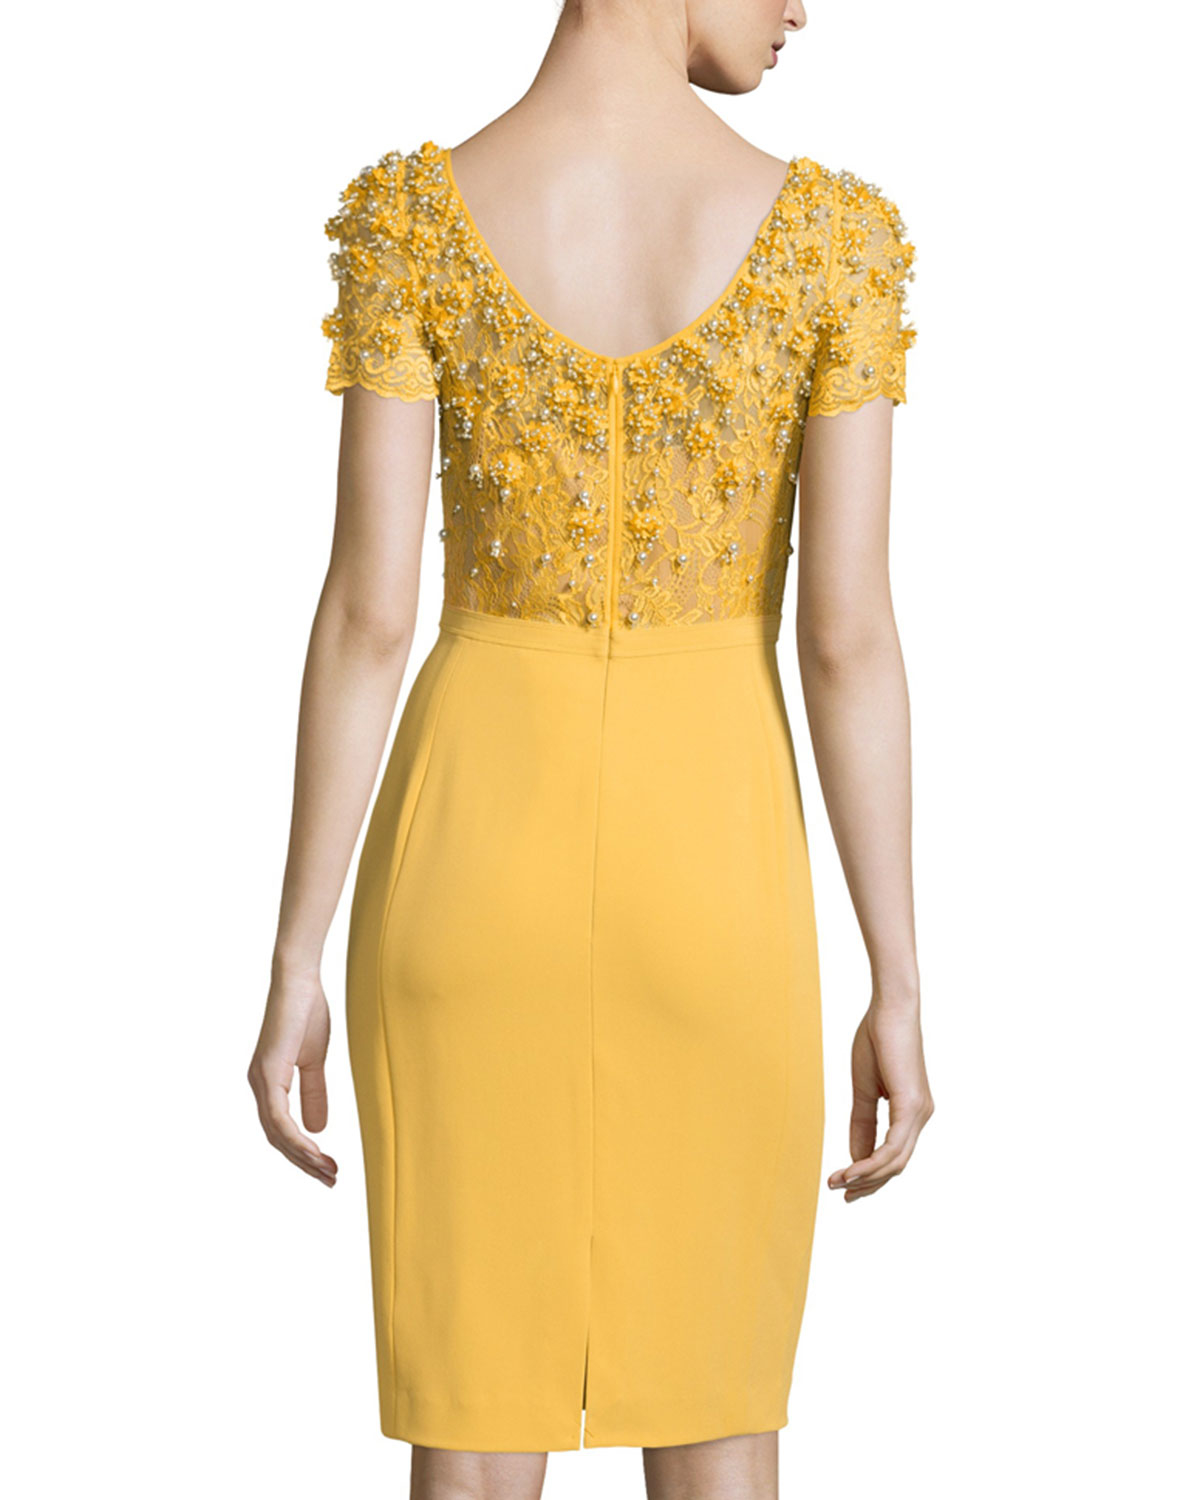 Lyst - Jenny Packham Embellished Stretch-Crepe Dress in Yellow